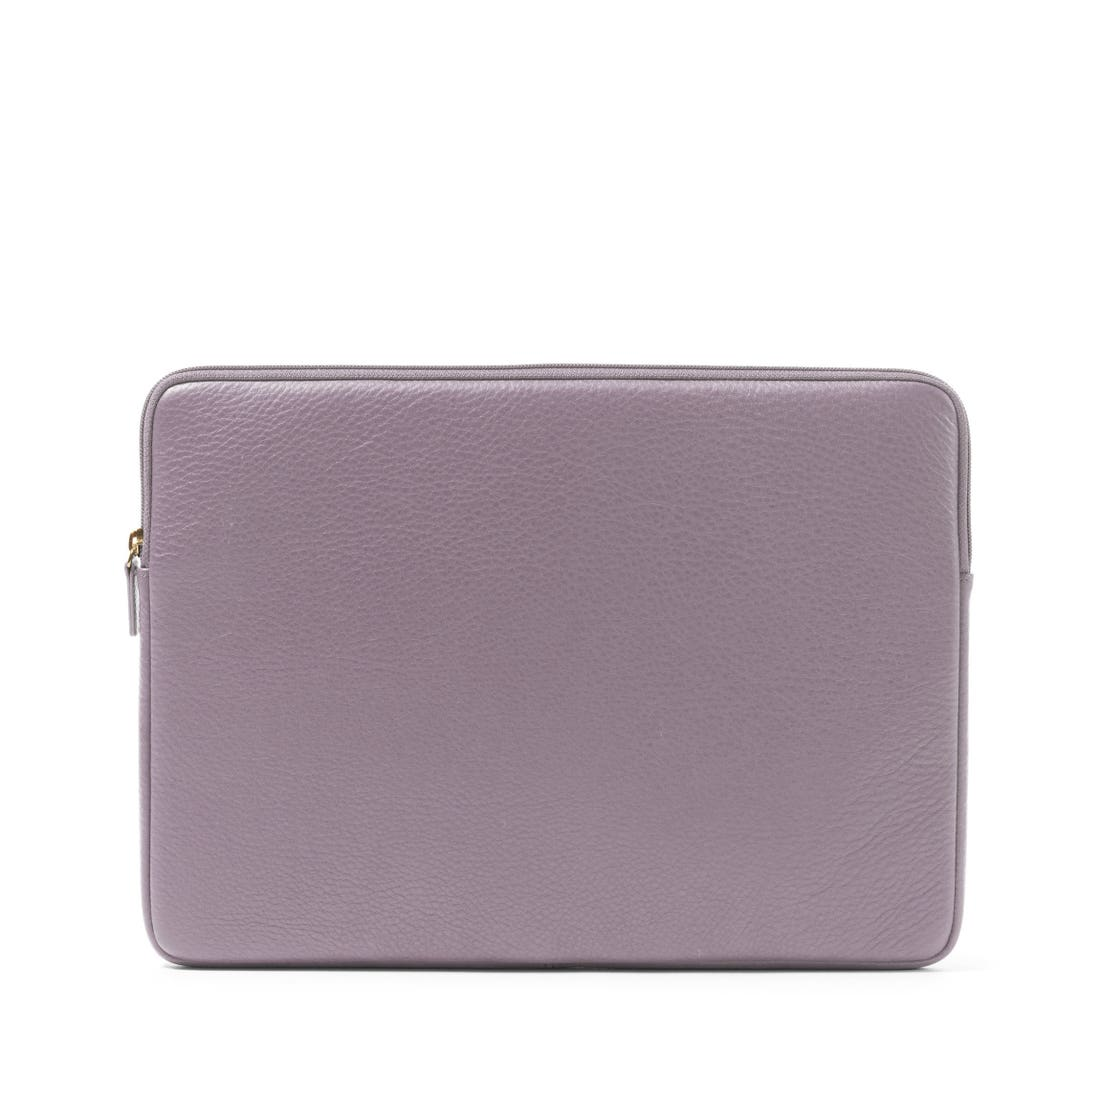 15 Inch Slim Laptop Sleeve